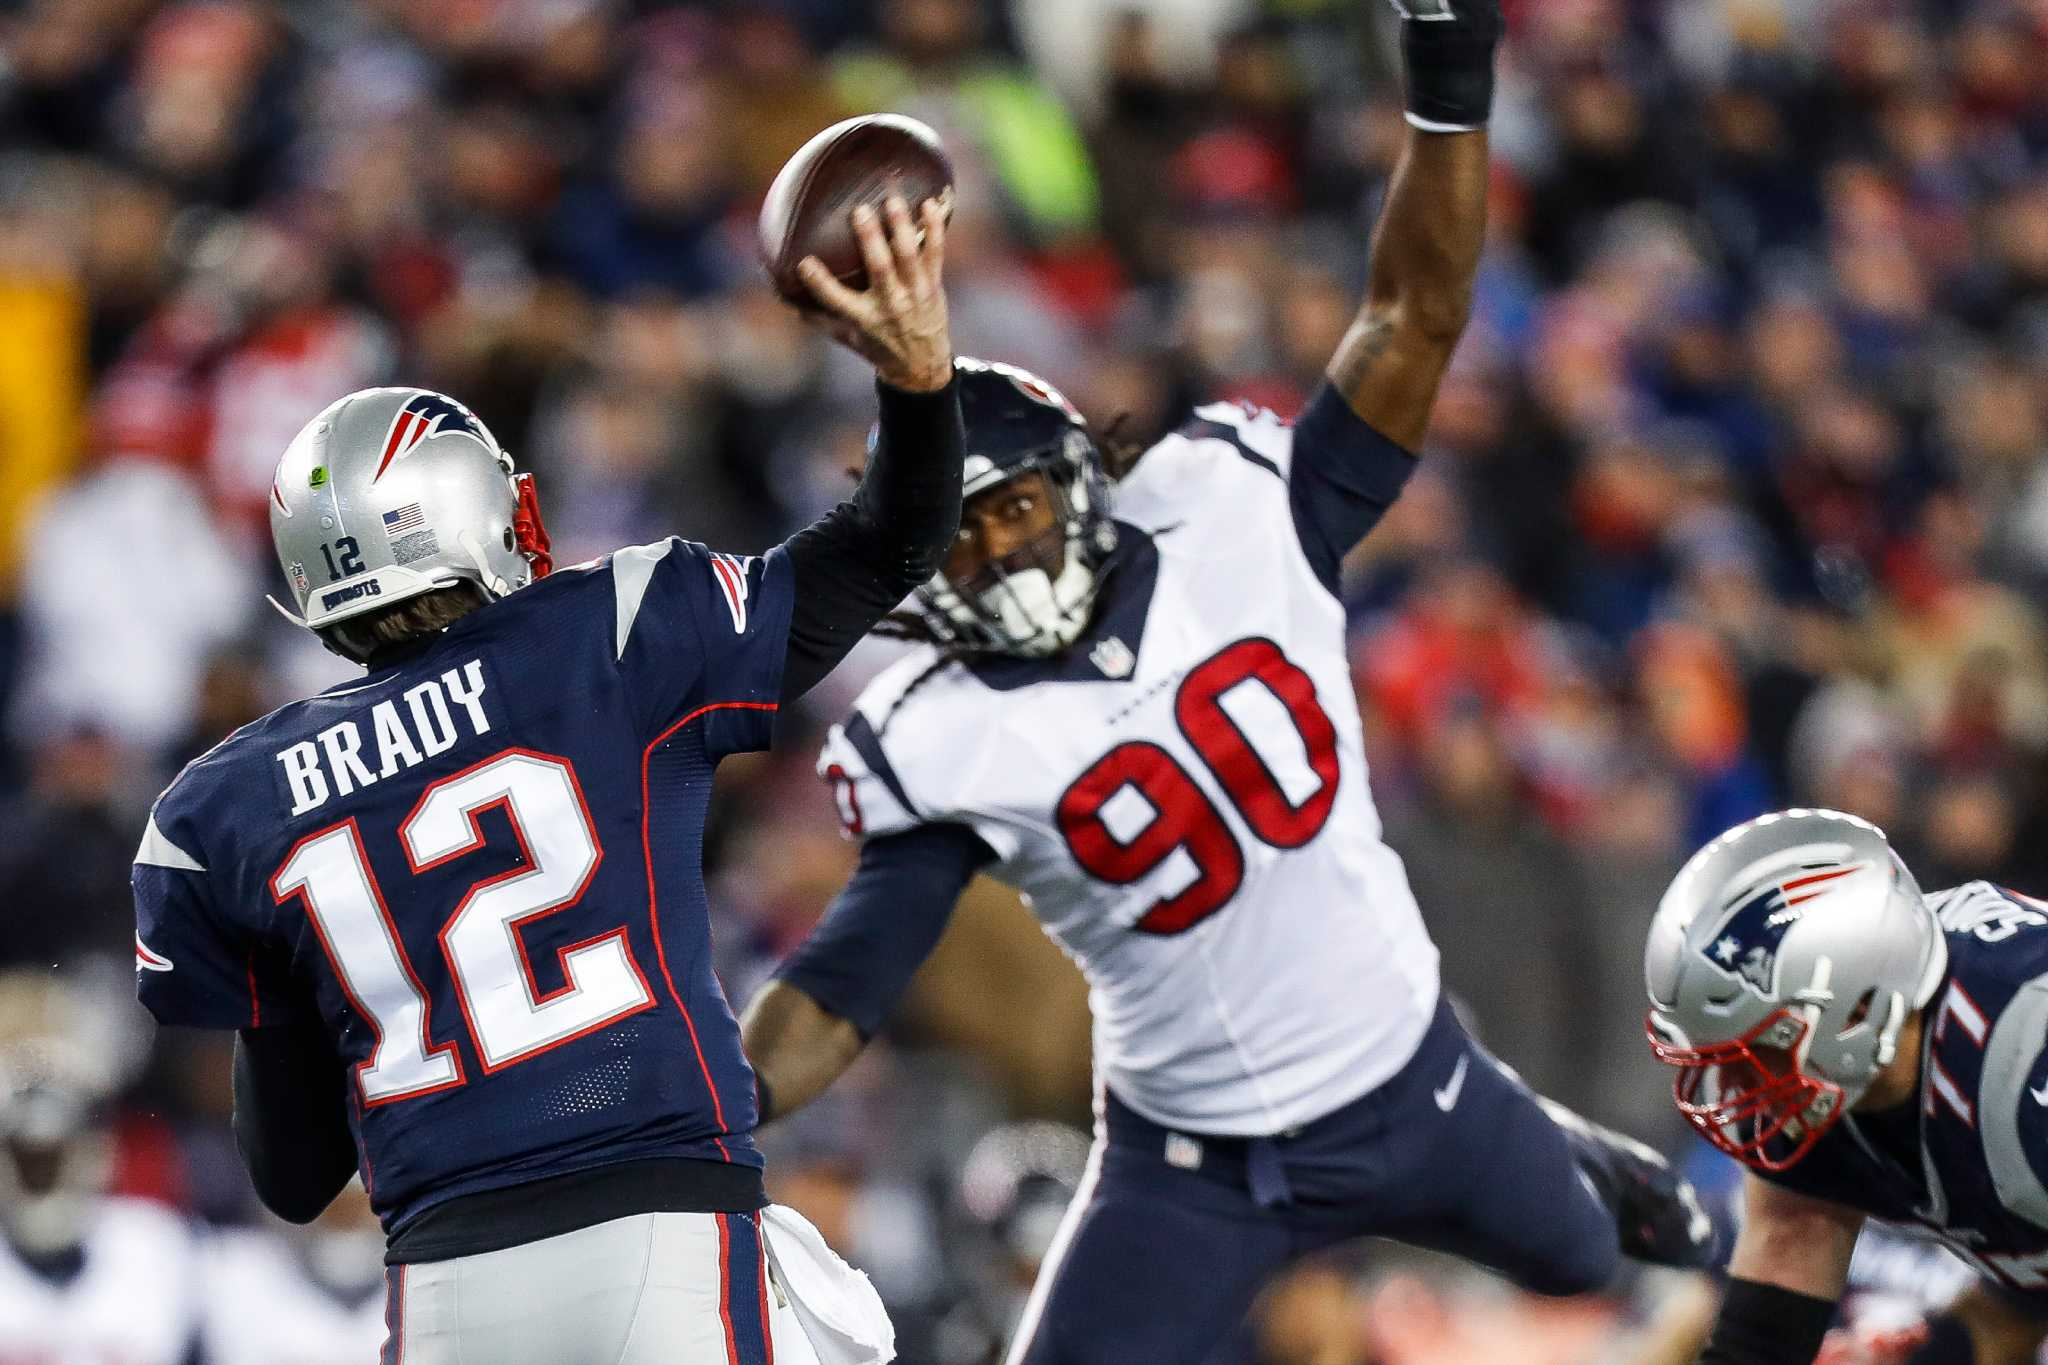 Texans Jadeveon Clowney flattered by position coach s Hall of